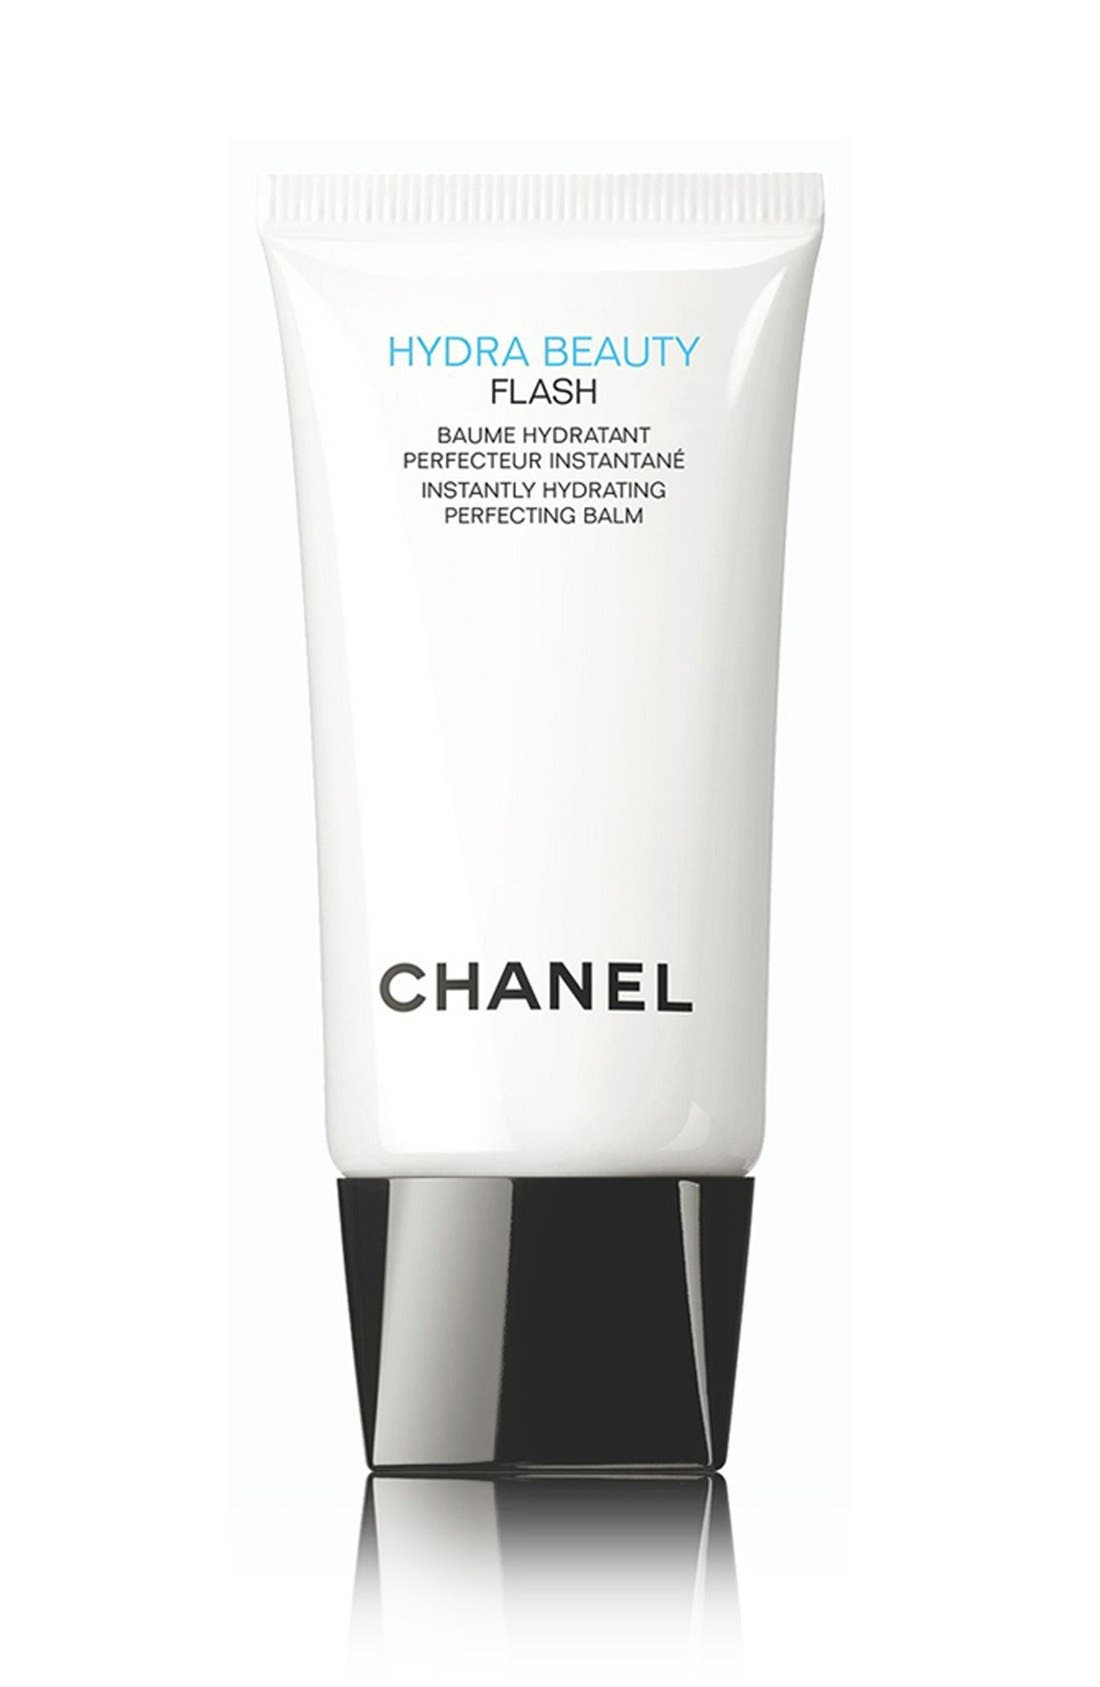 CHANEL HYDRA BEAUTY FLASH  Instantly Hydrating Perfecting Balm